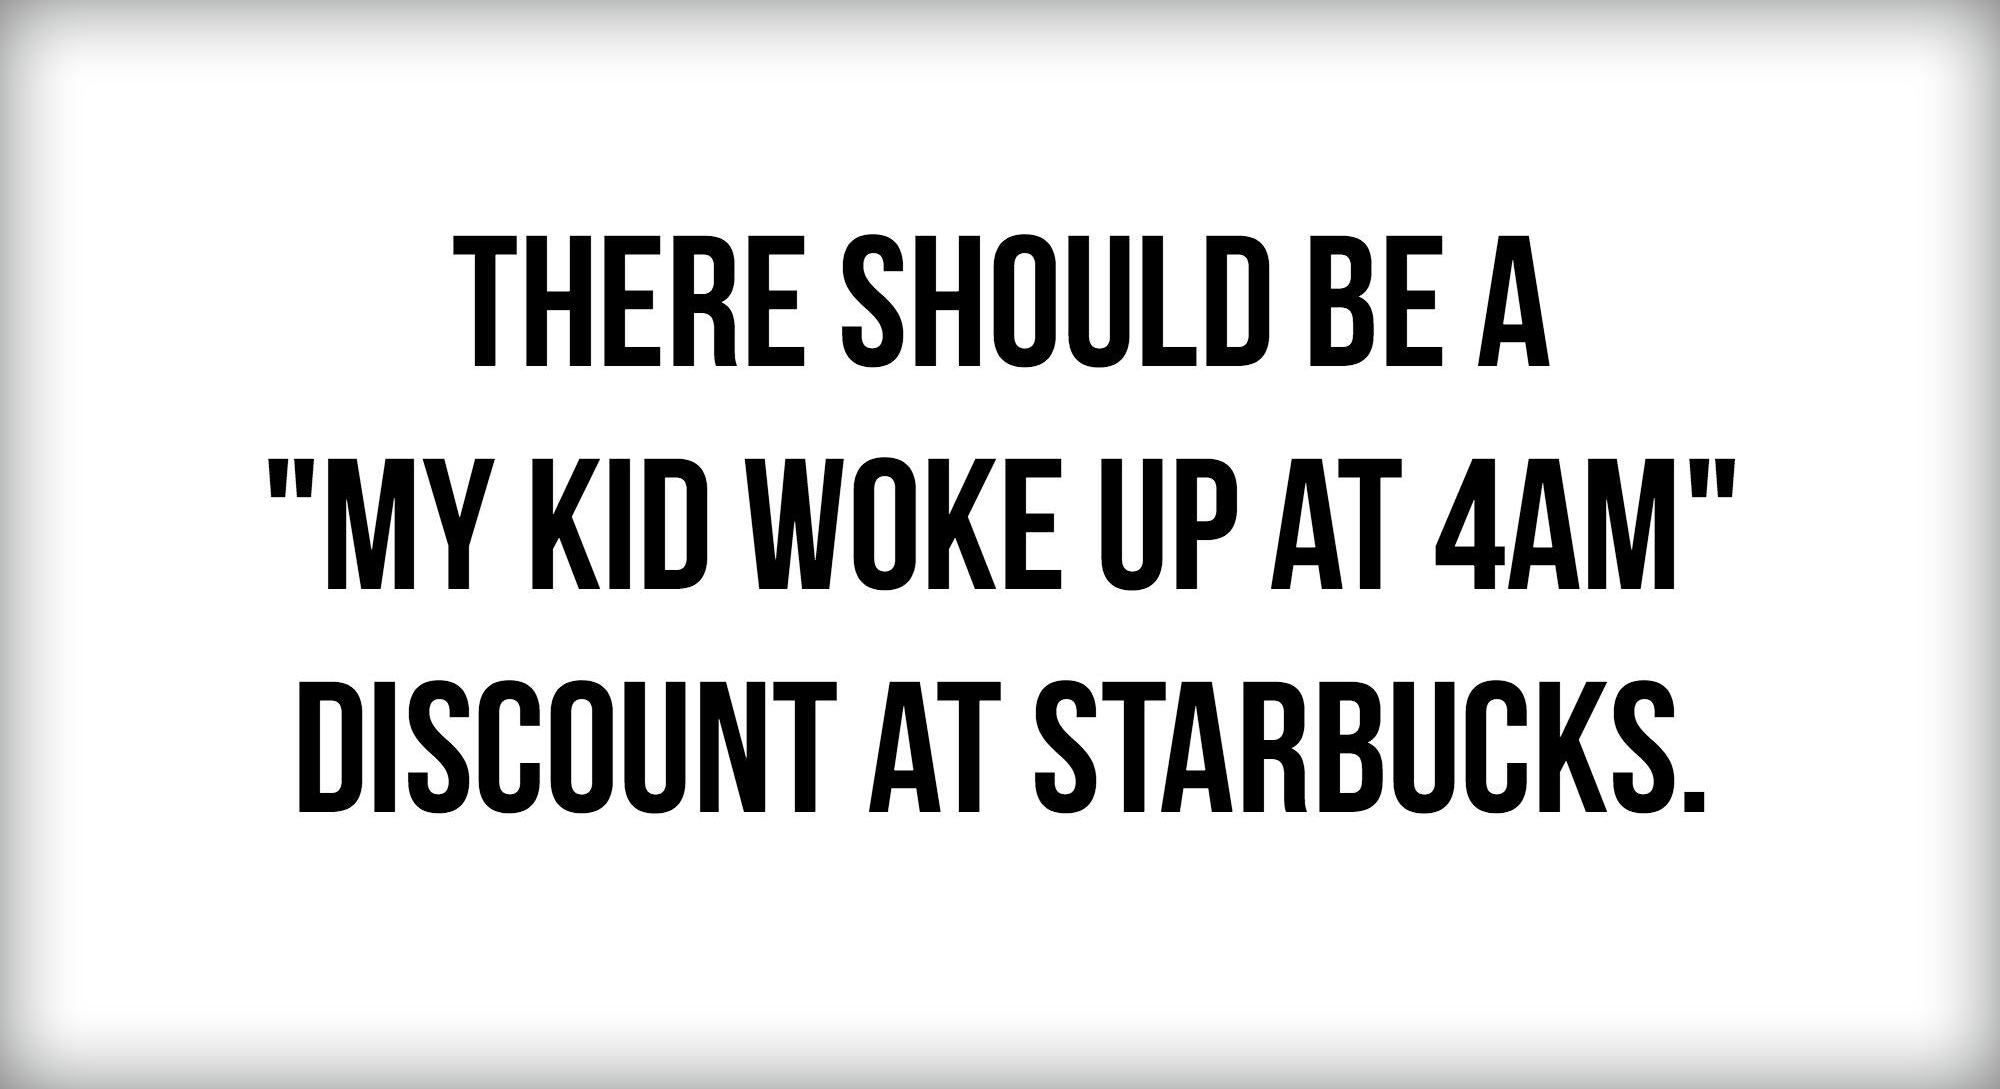 funny fun favorite mom quotes and memes that will make you laugh giggle and want more - There should be a my kids woke up at 4am discount at starbucks